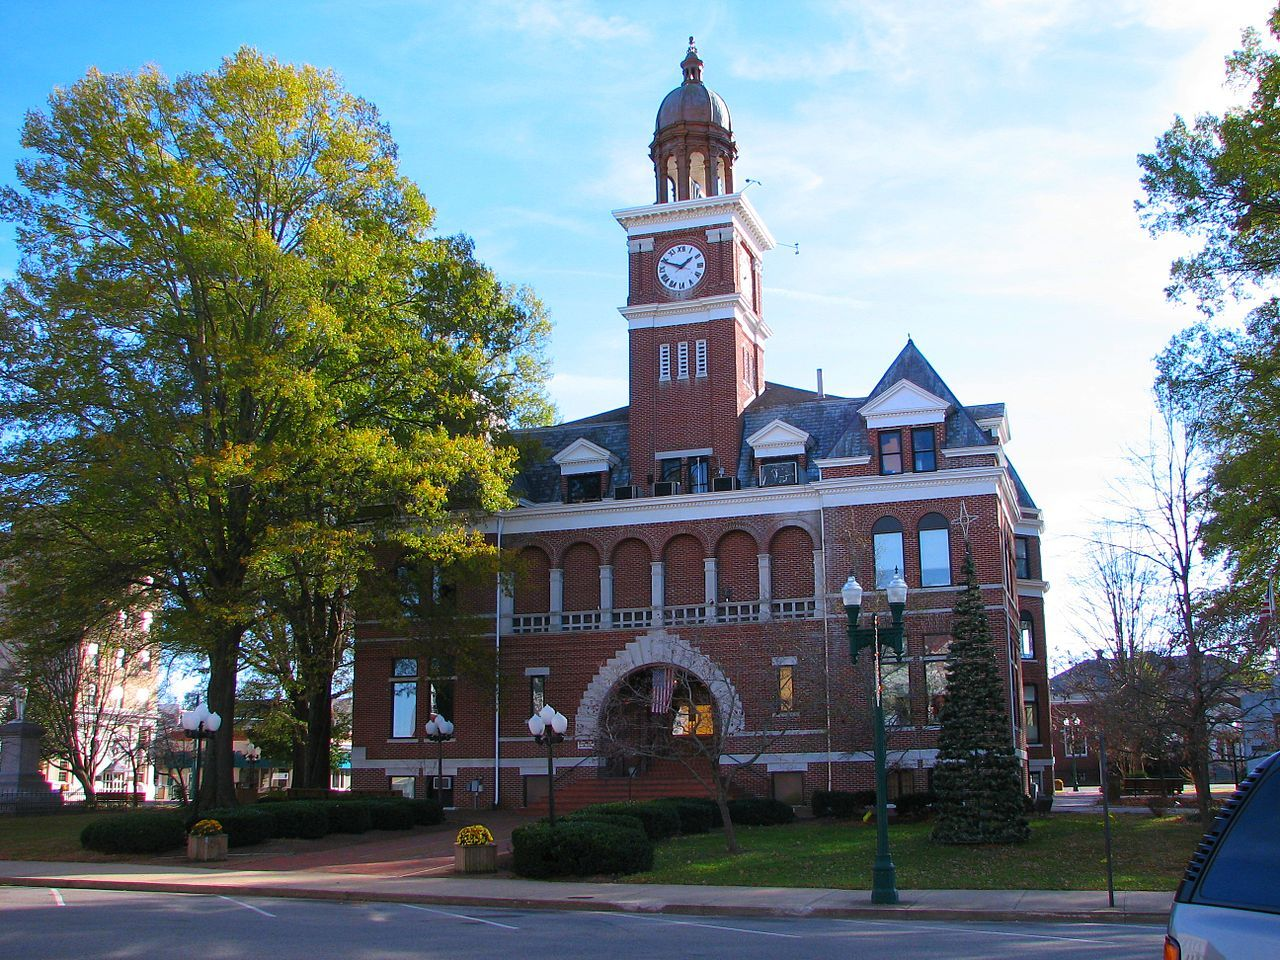 15 Best Small Towns in Tennessee - Nice Small Towns to Visit